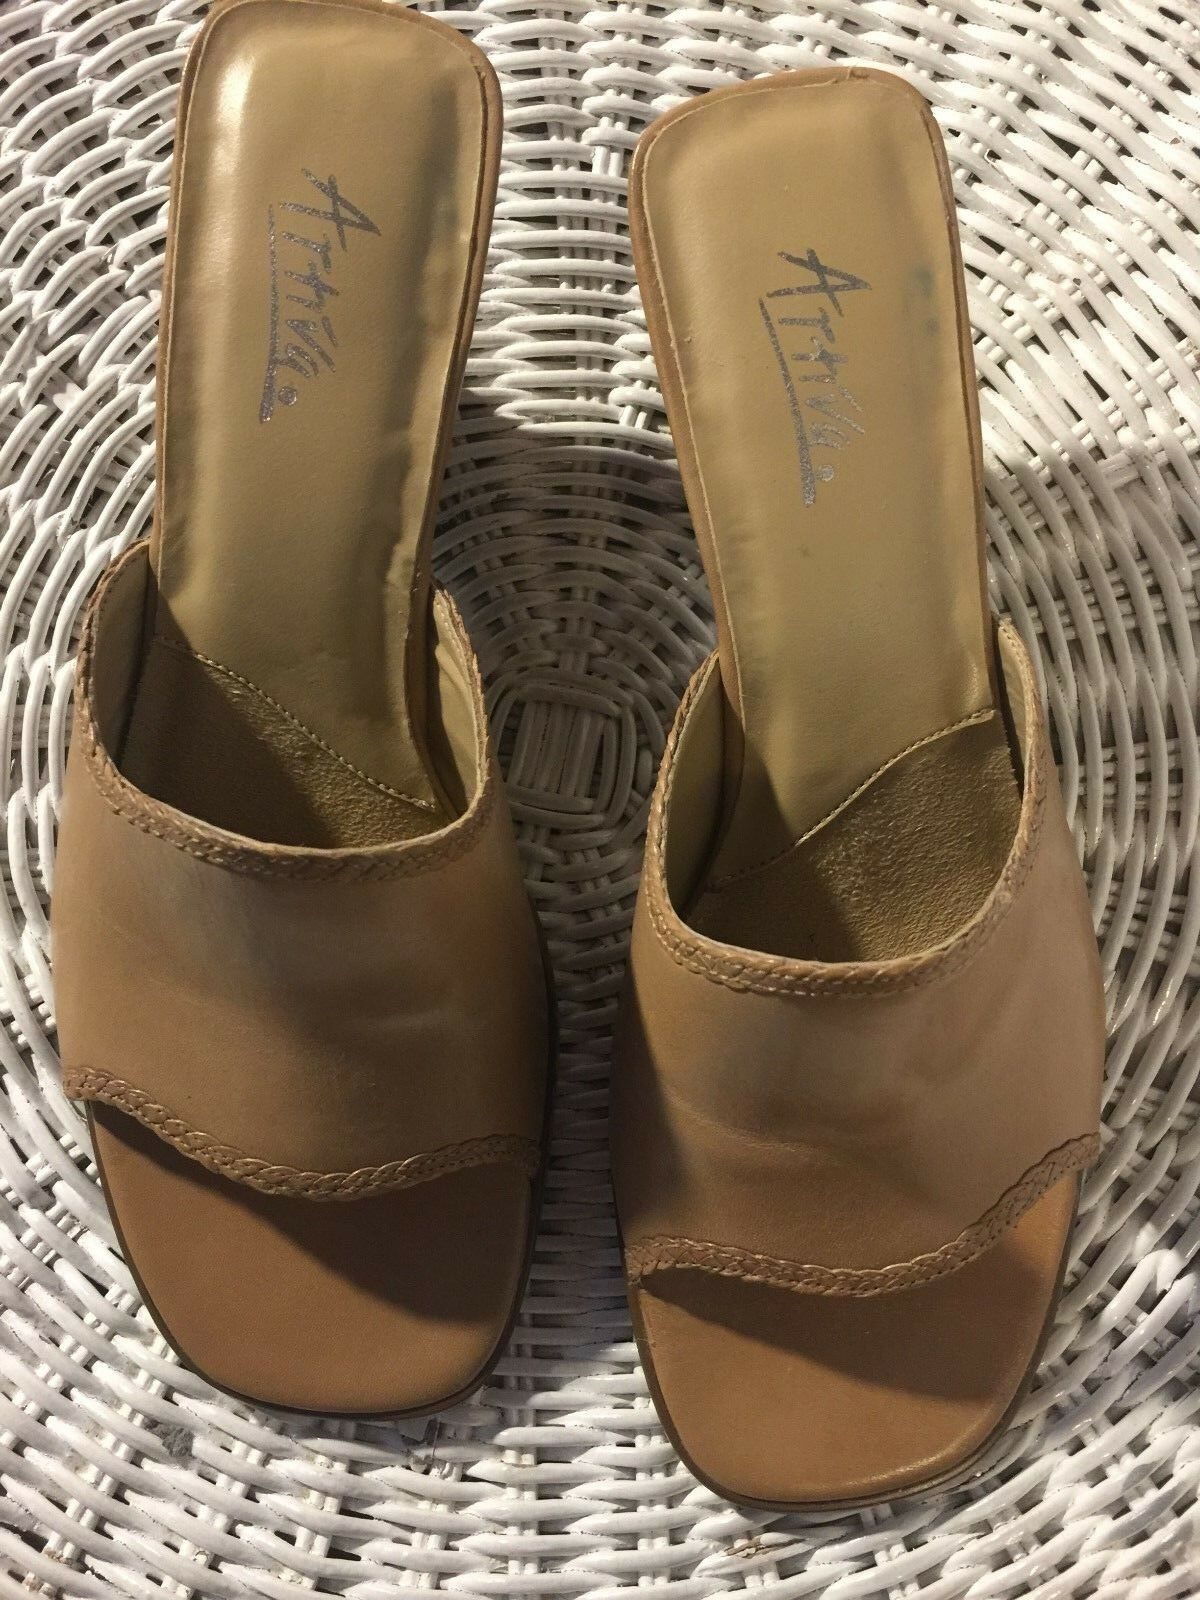 Sandals ,ARTIVA, Tan leather 2 1 2   heel, SZ  6 1 2M MADE IN BRAZIL